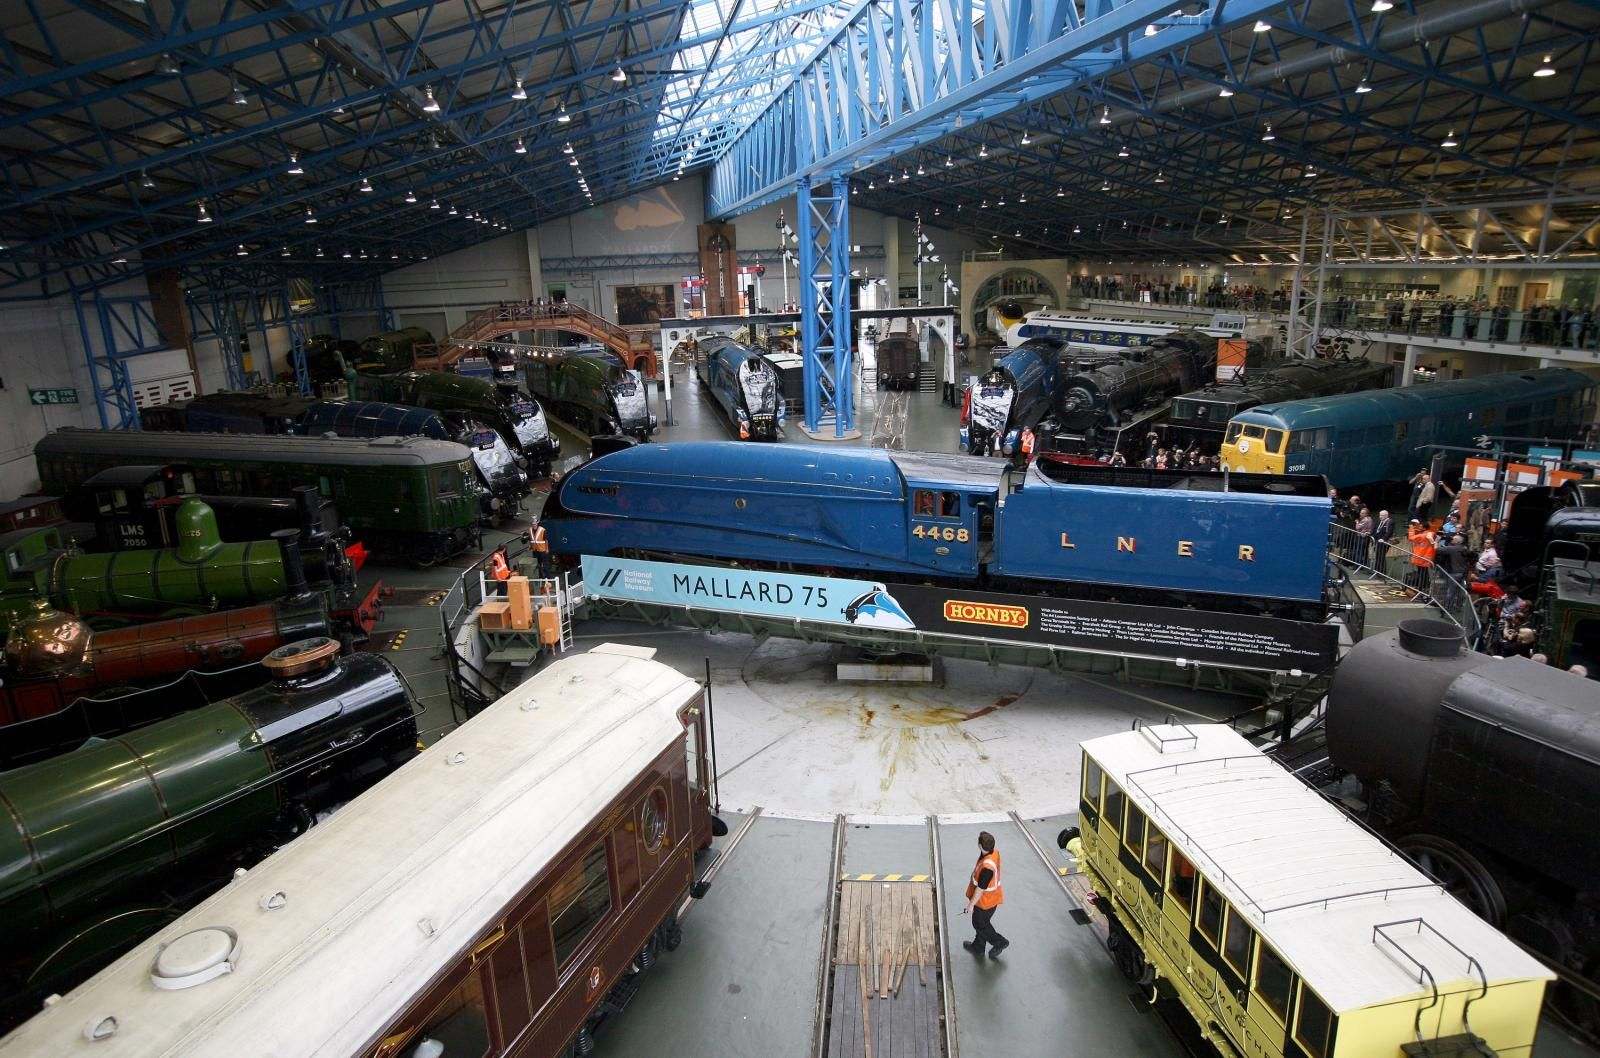 Amazing collection of trains